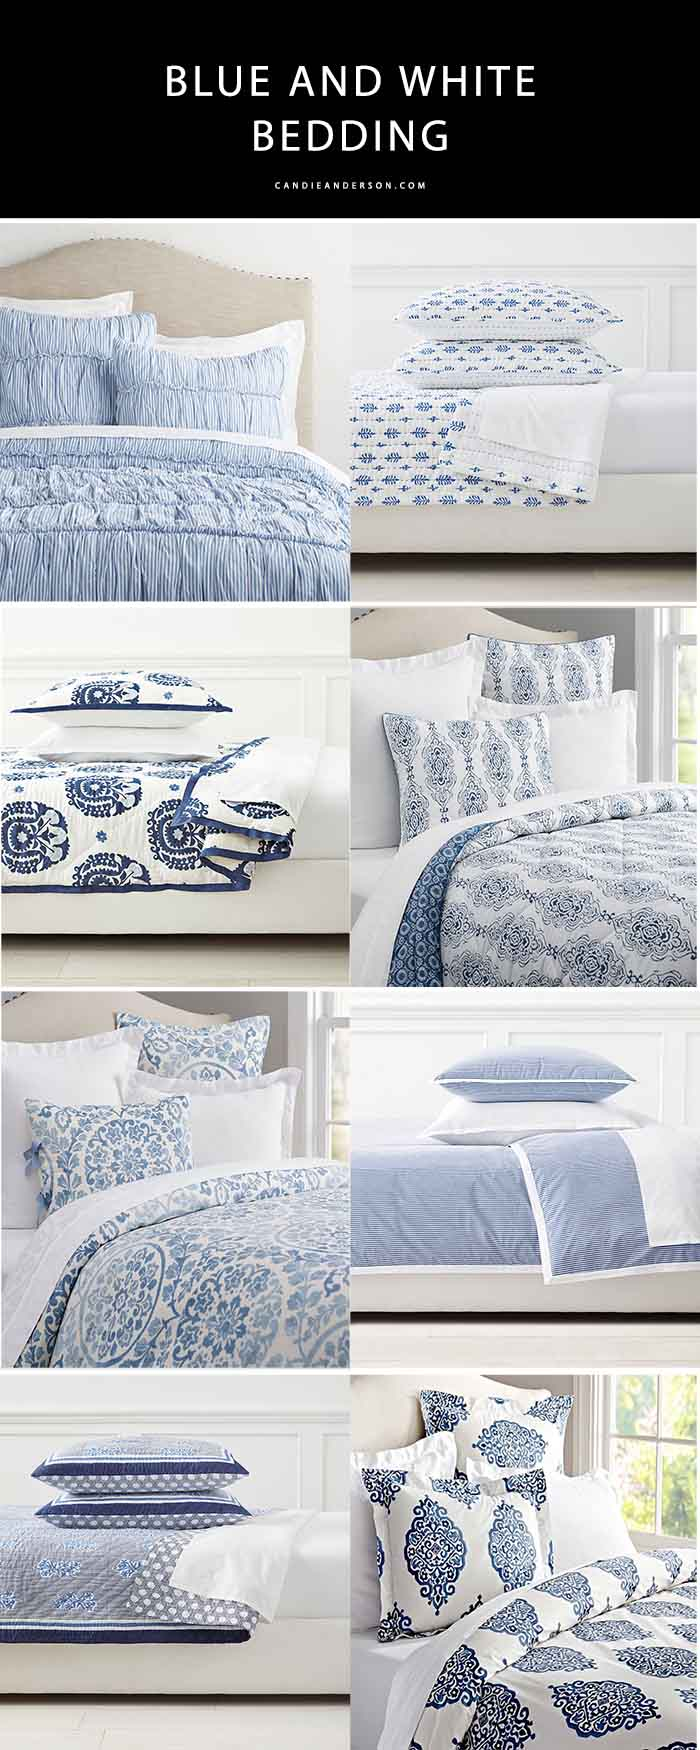 20 Trendy Blue And White Bedding Essentials For Spring Candie Anderson